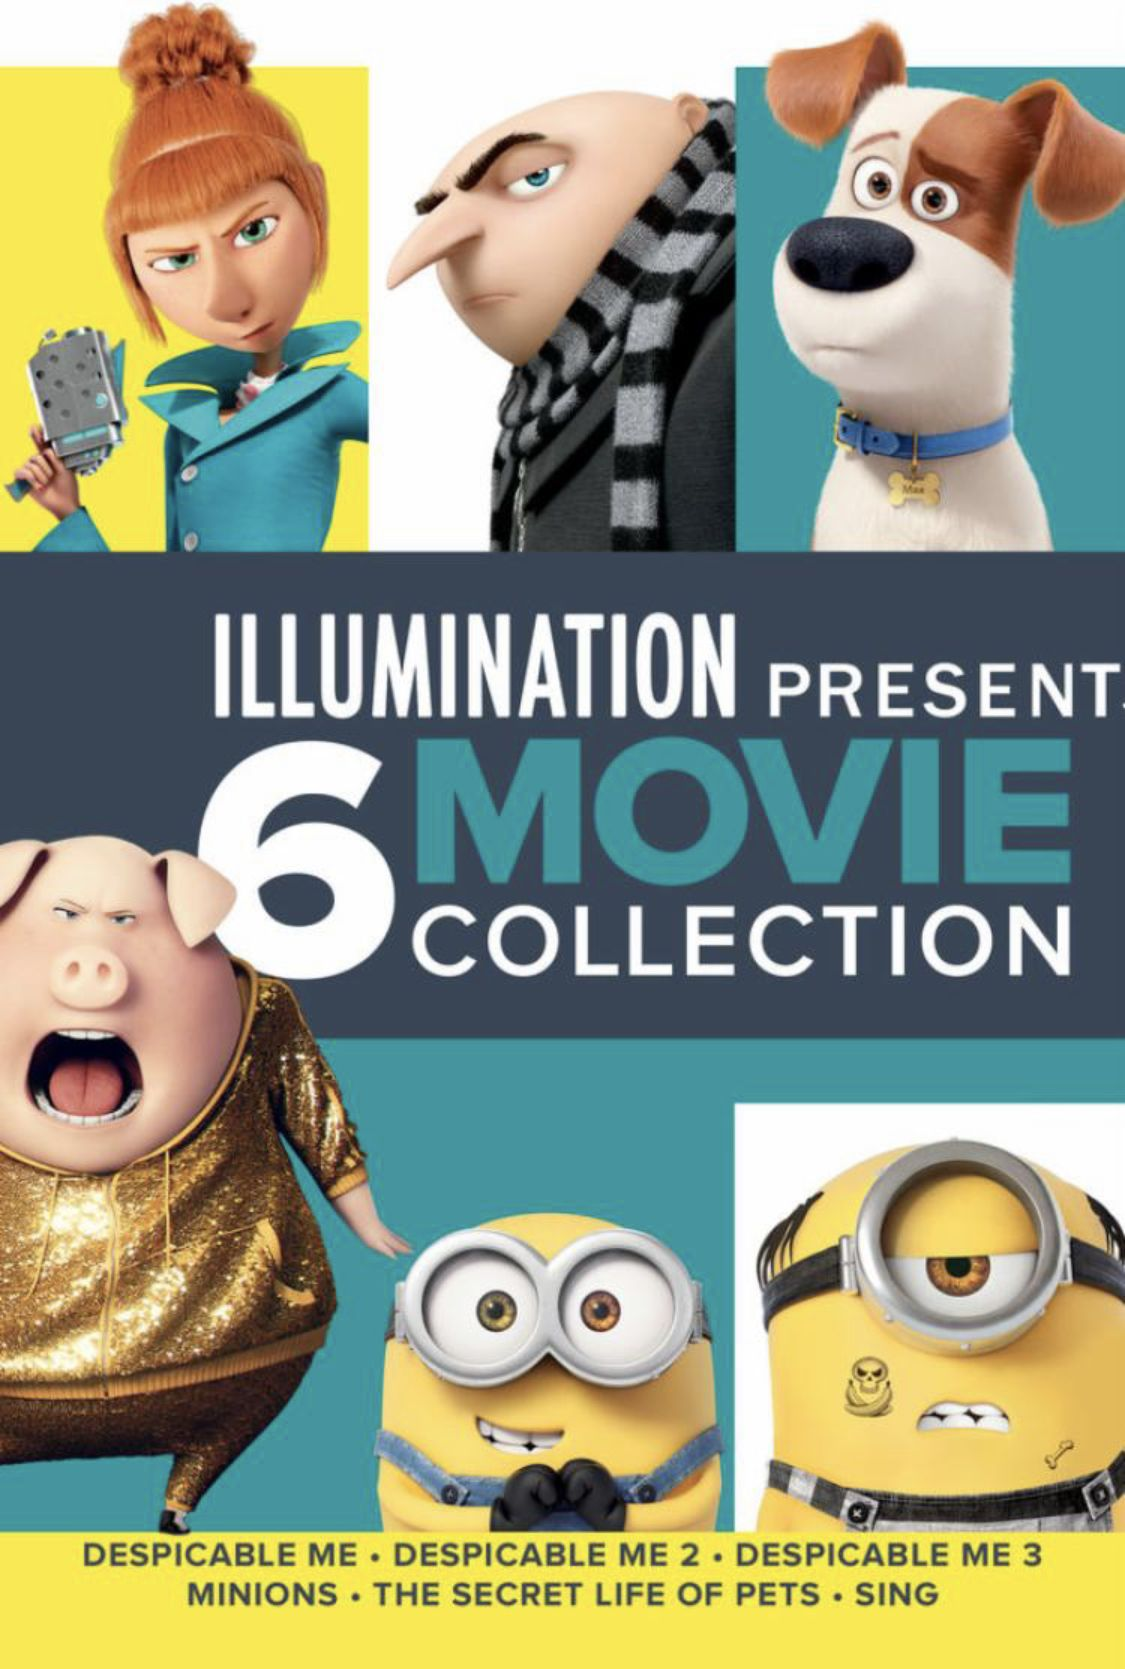 Illumination 6 Film Collection 50 Off 39 99 Discover Great Deals On Fantastic Apps Tech More Minions Singing Secret Life Of Pets Movie Collection